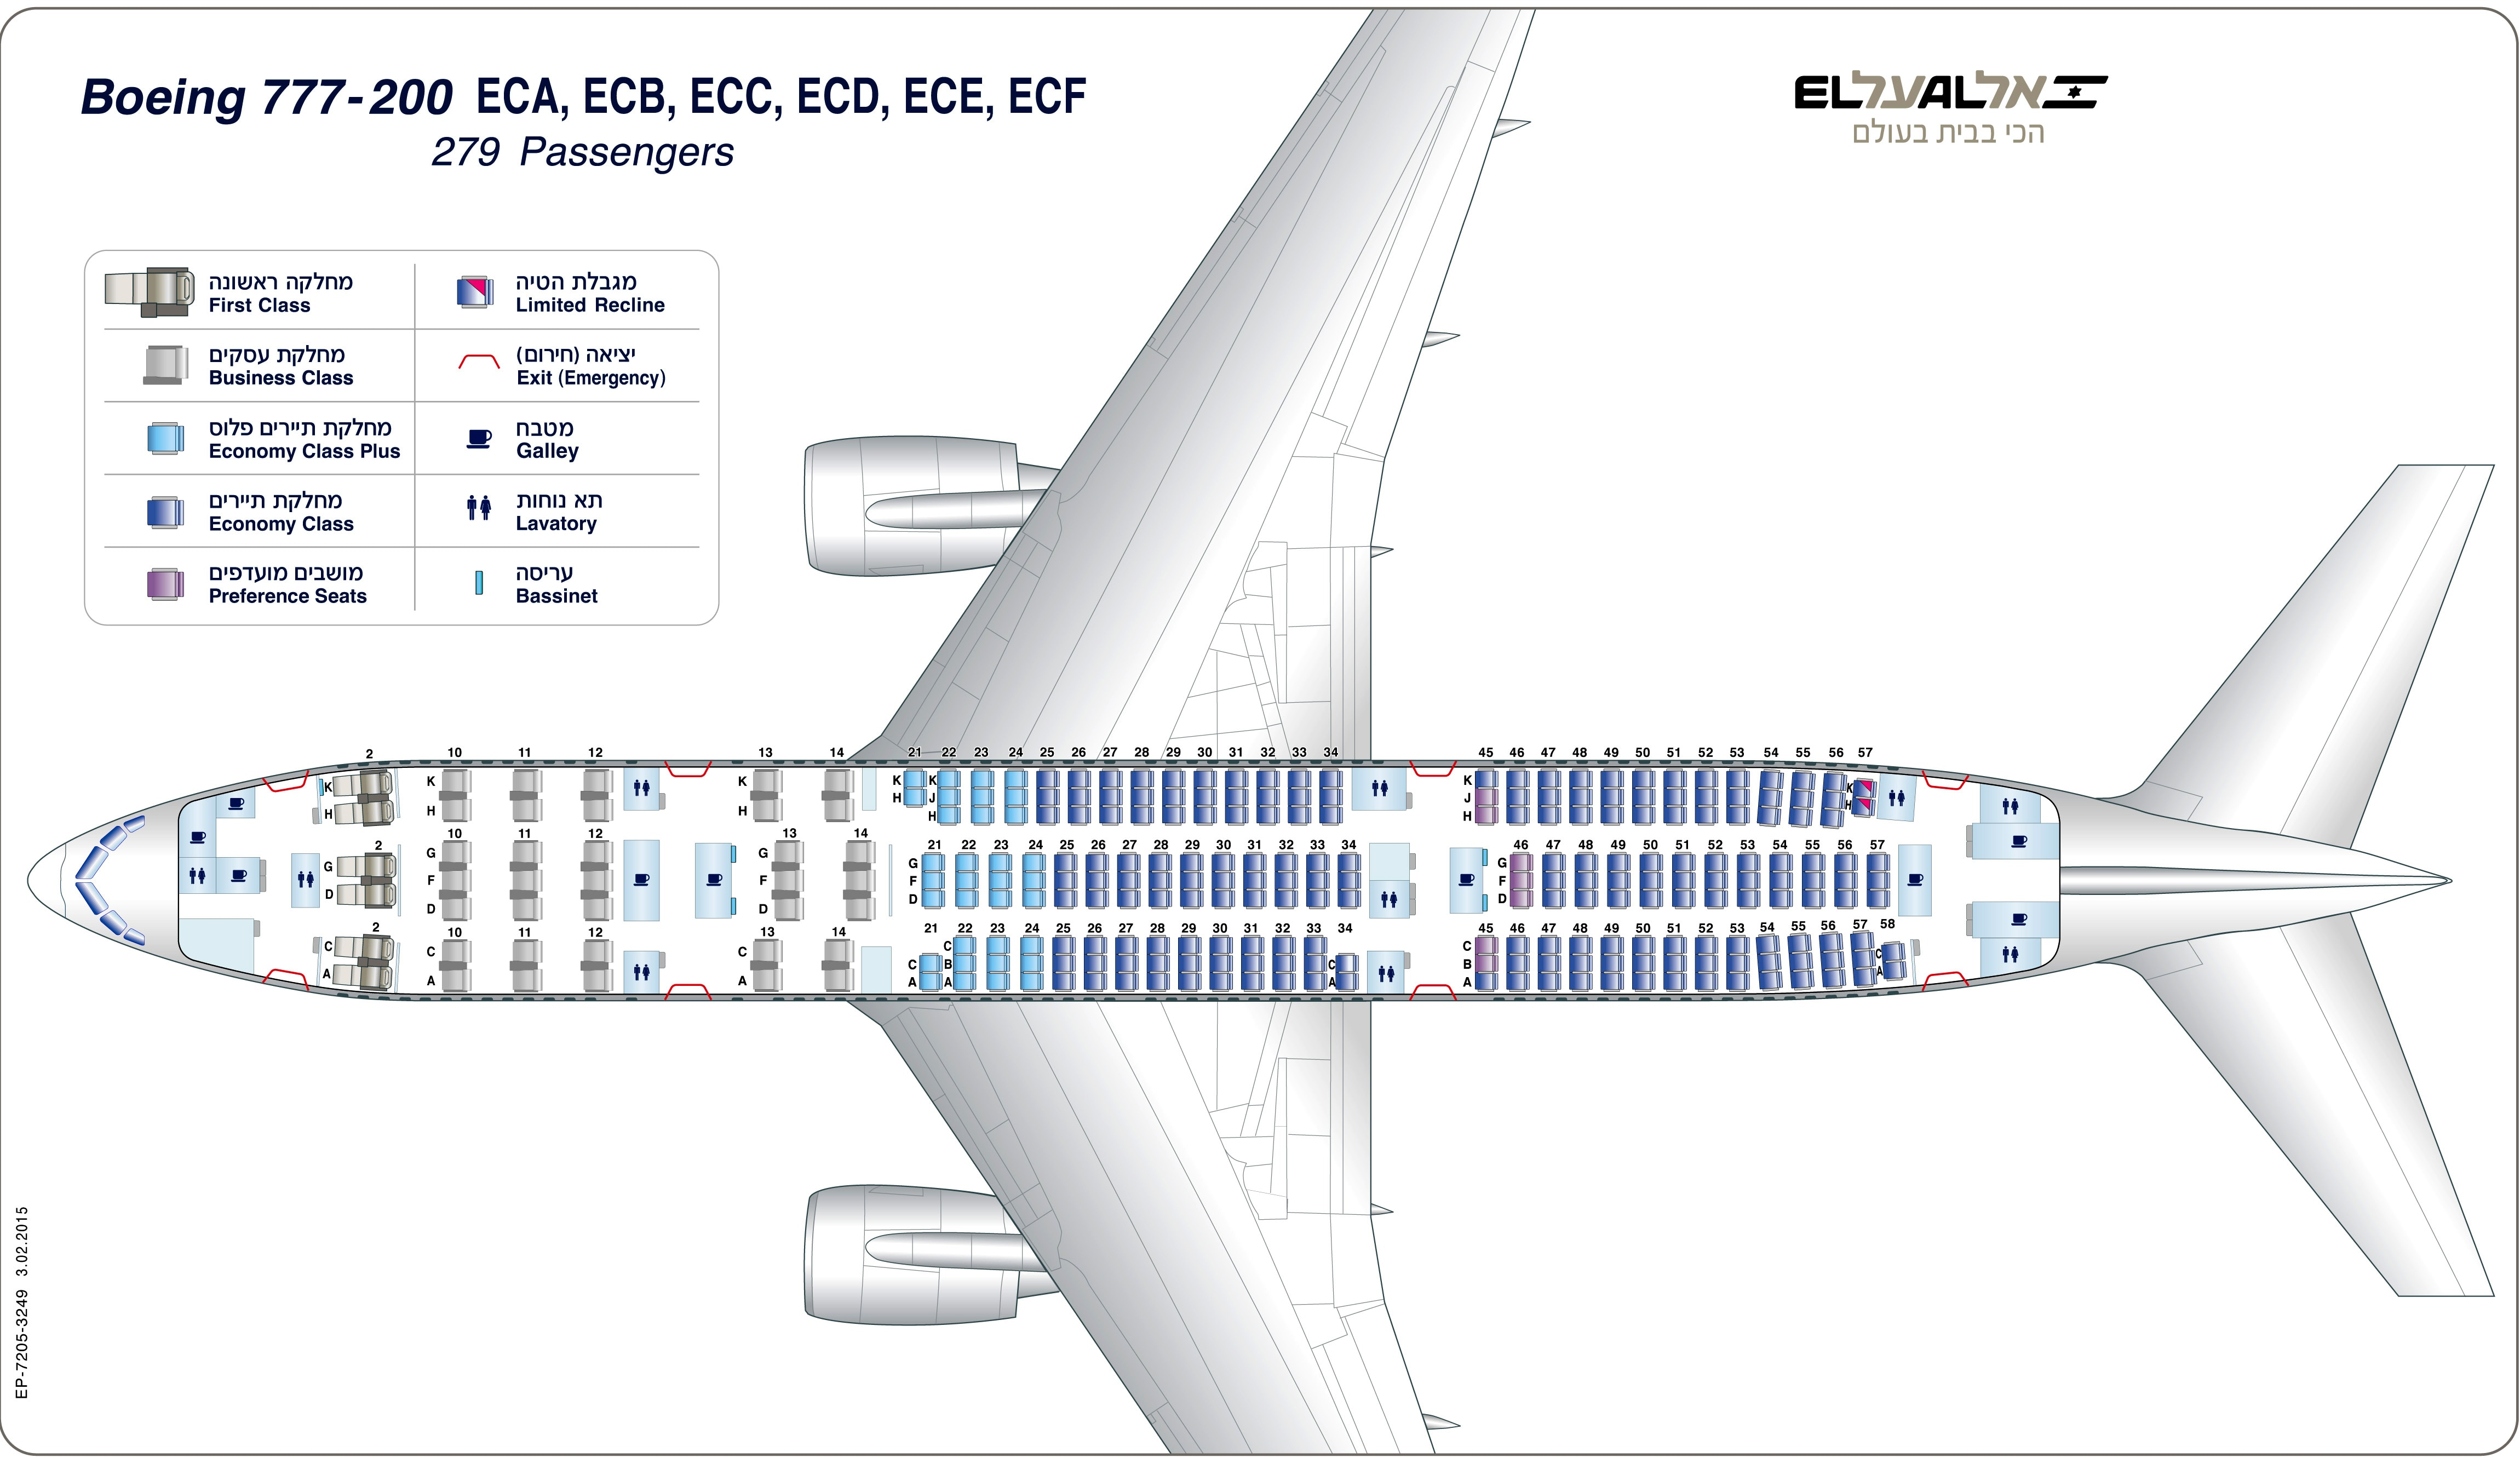 china southern airlines seat reservation manual